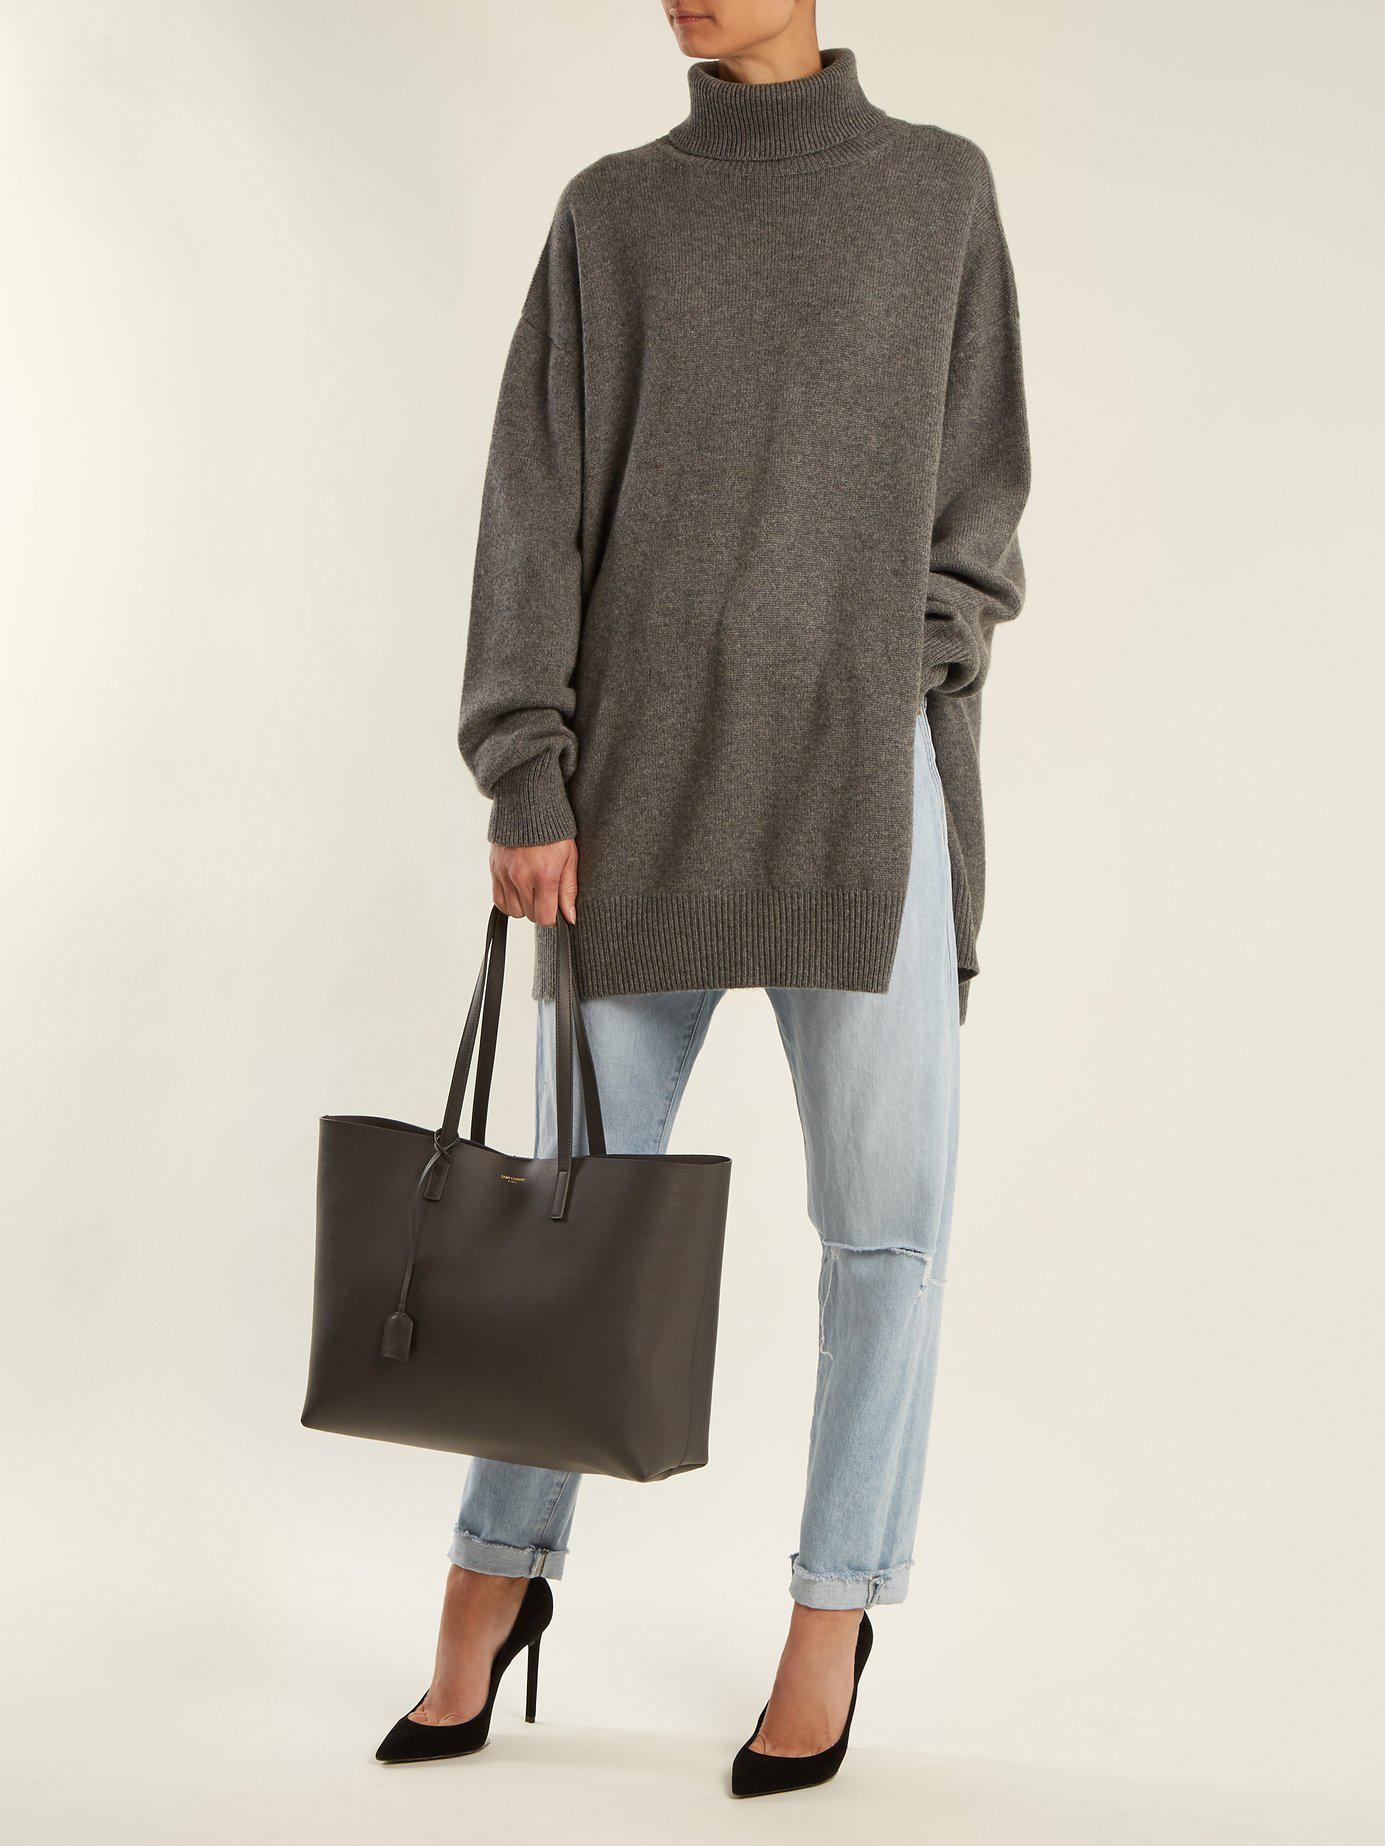 59eb5d03ae14 Lyst - Saint Laurent East West Medium Leather Tote in Gray